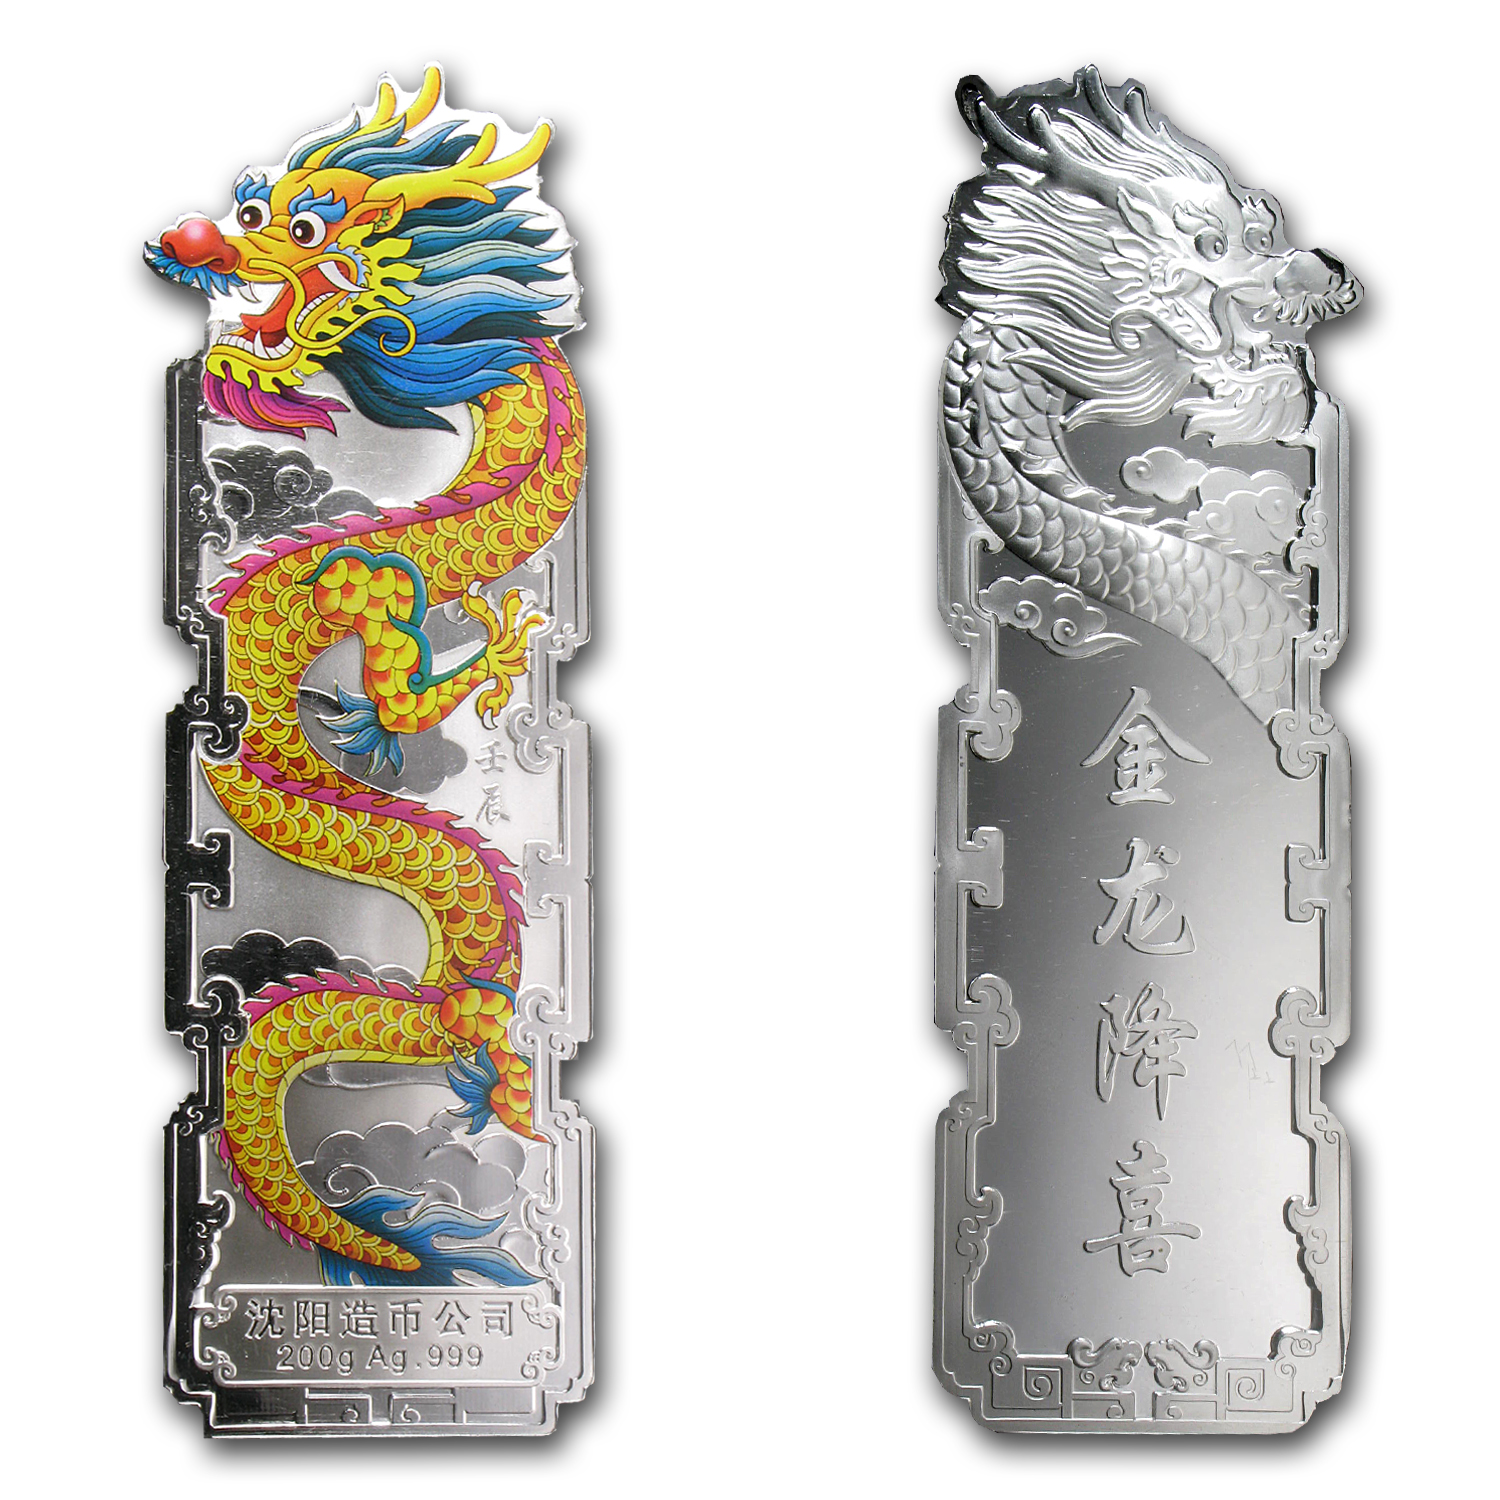 2012 China 200 gram Silver Year of the Dragon Bar (Colorized)